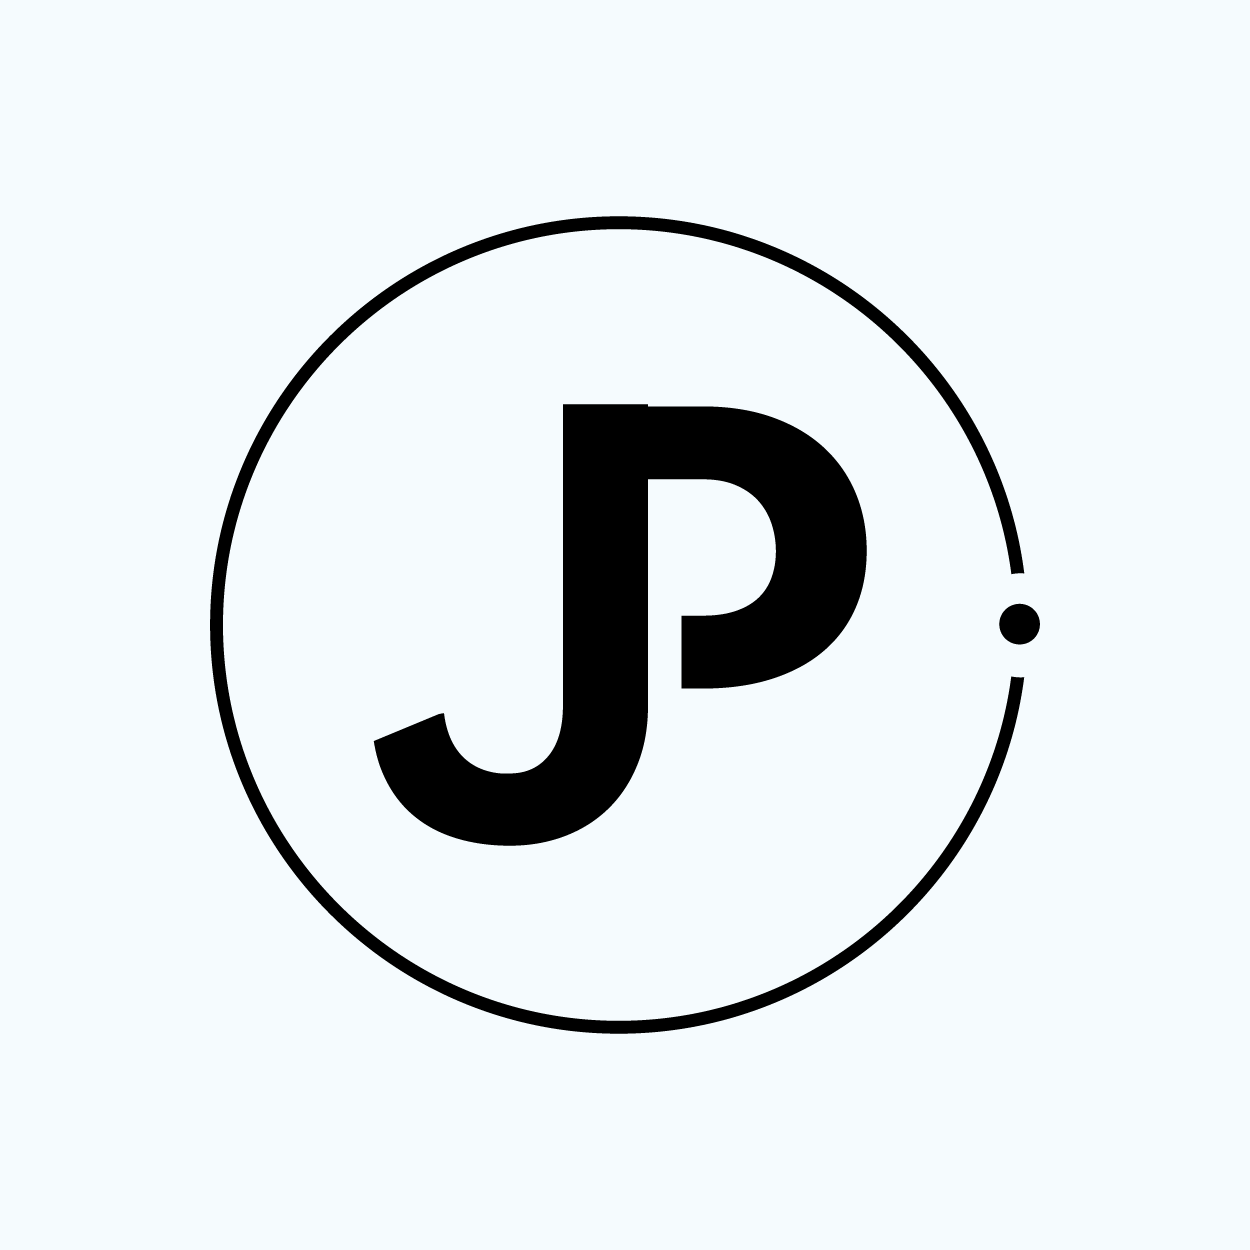 jpadamsonline.com - turning ideas into outcomes